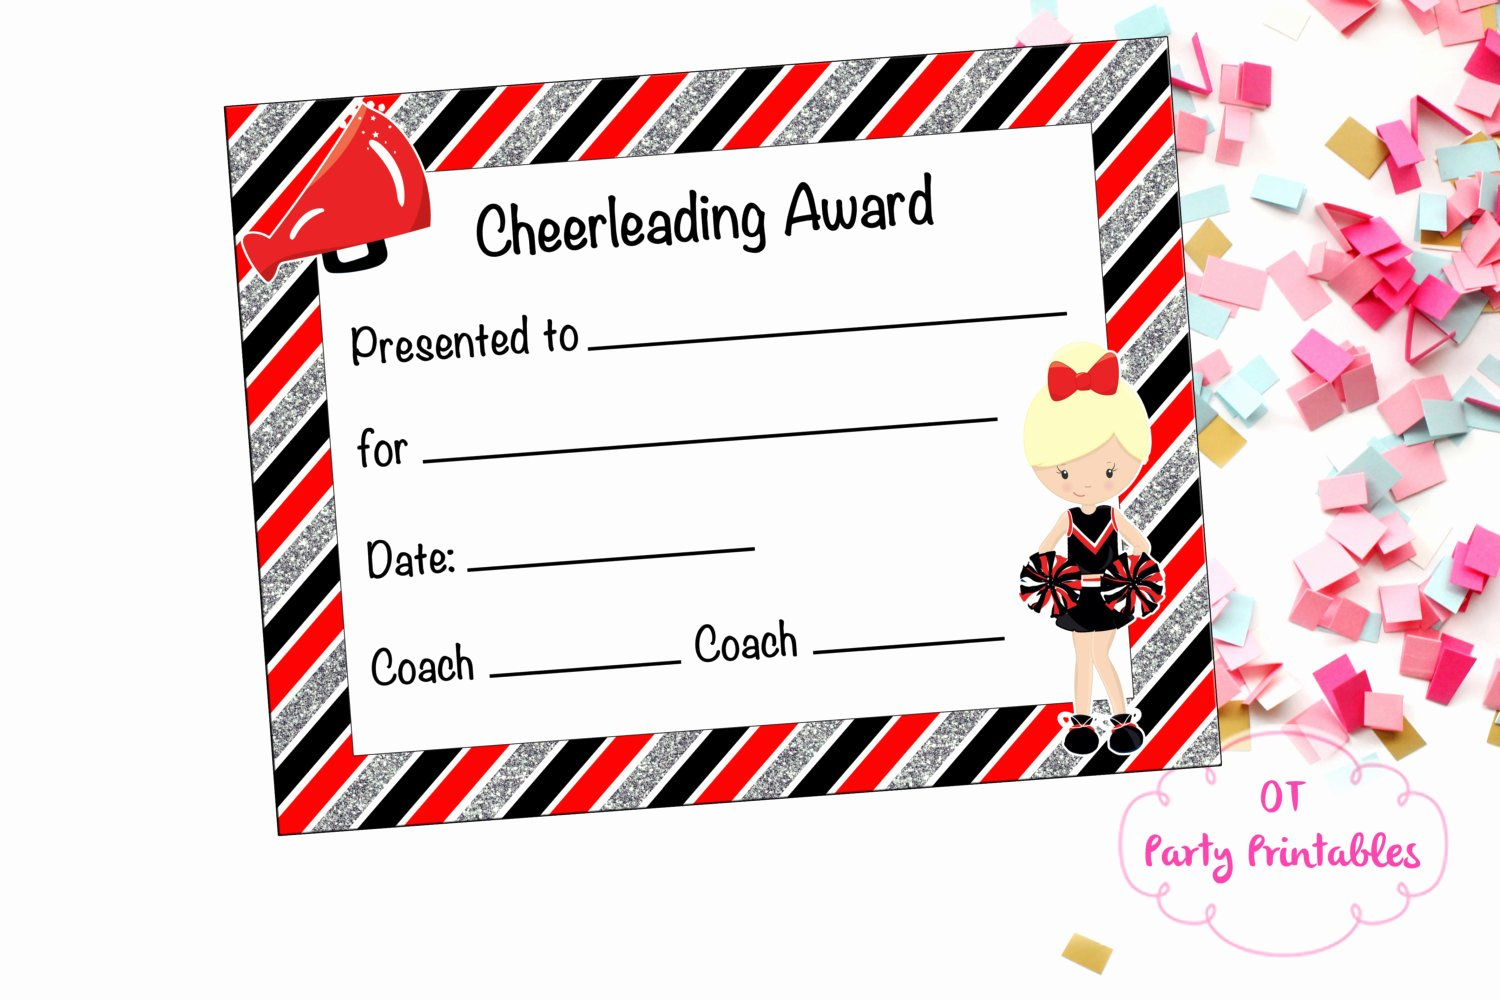 Free Cheer Award Certificate Templates New Cheerleading Certificate Cheerleading Award Cheerleading